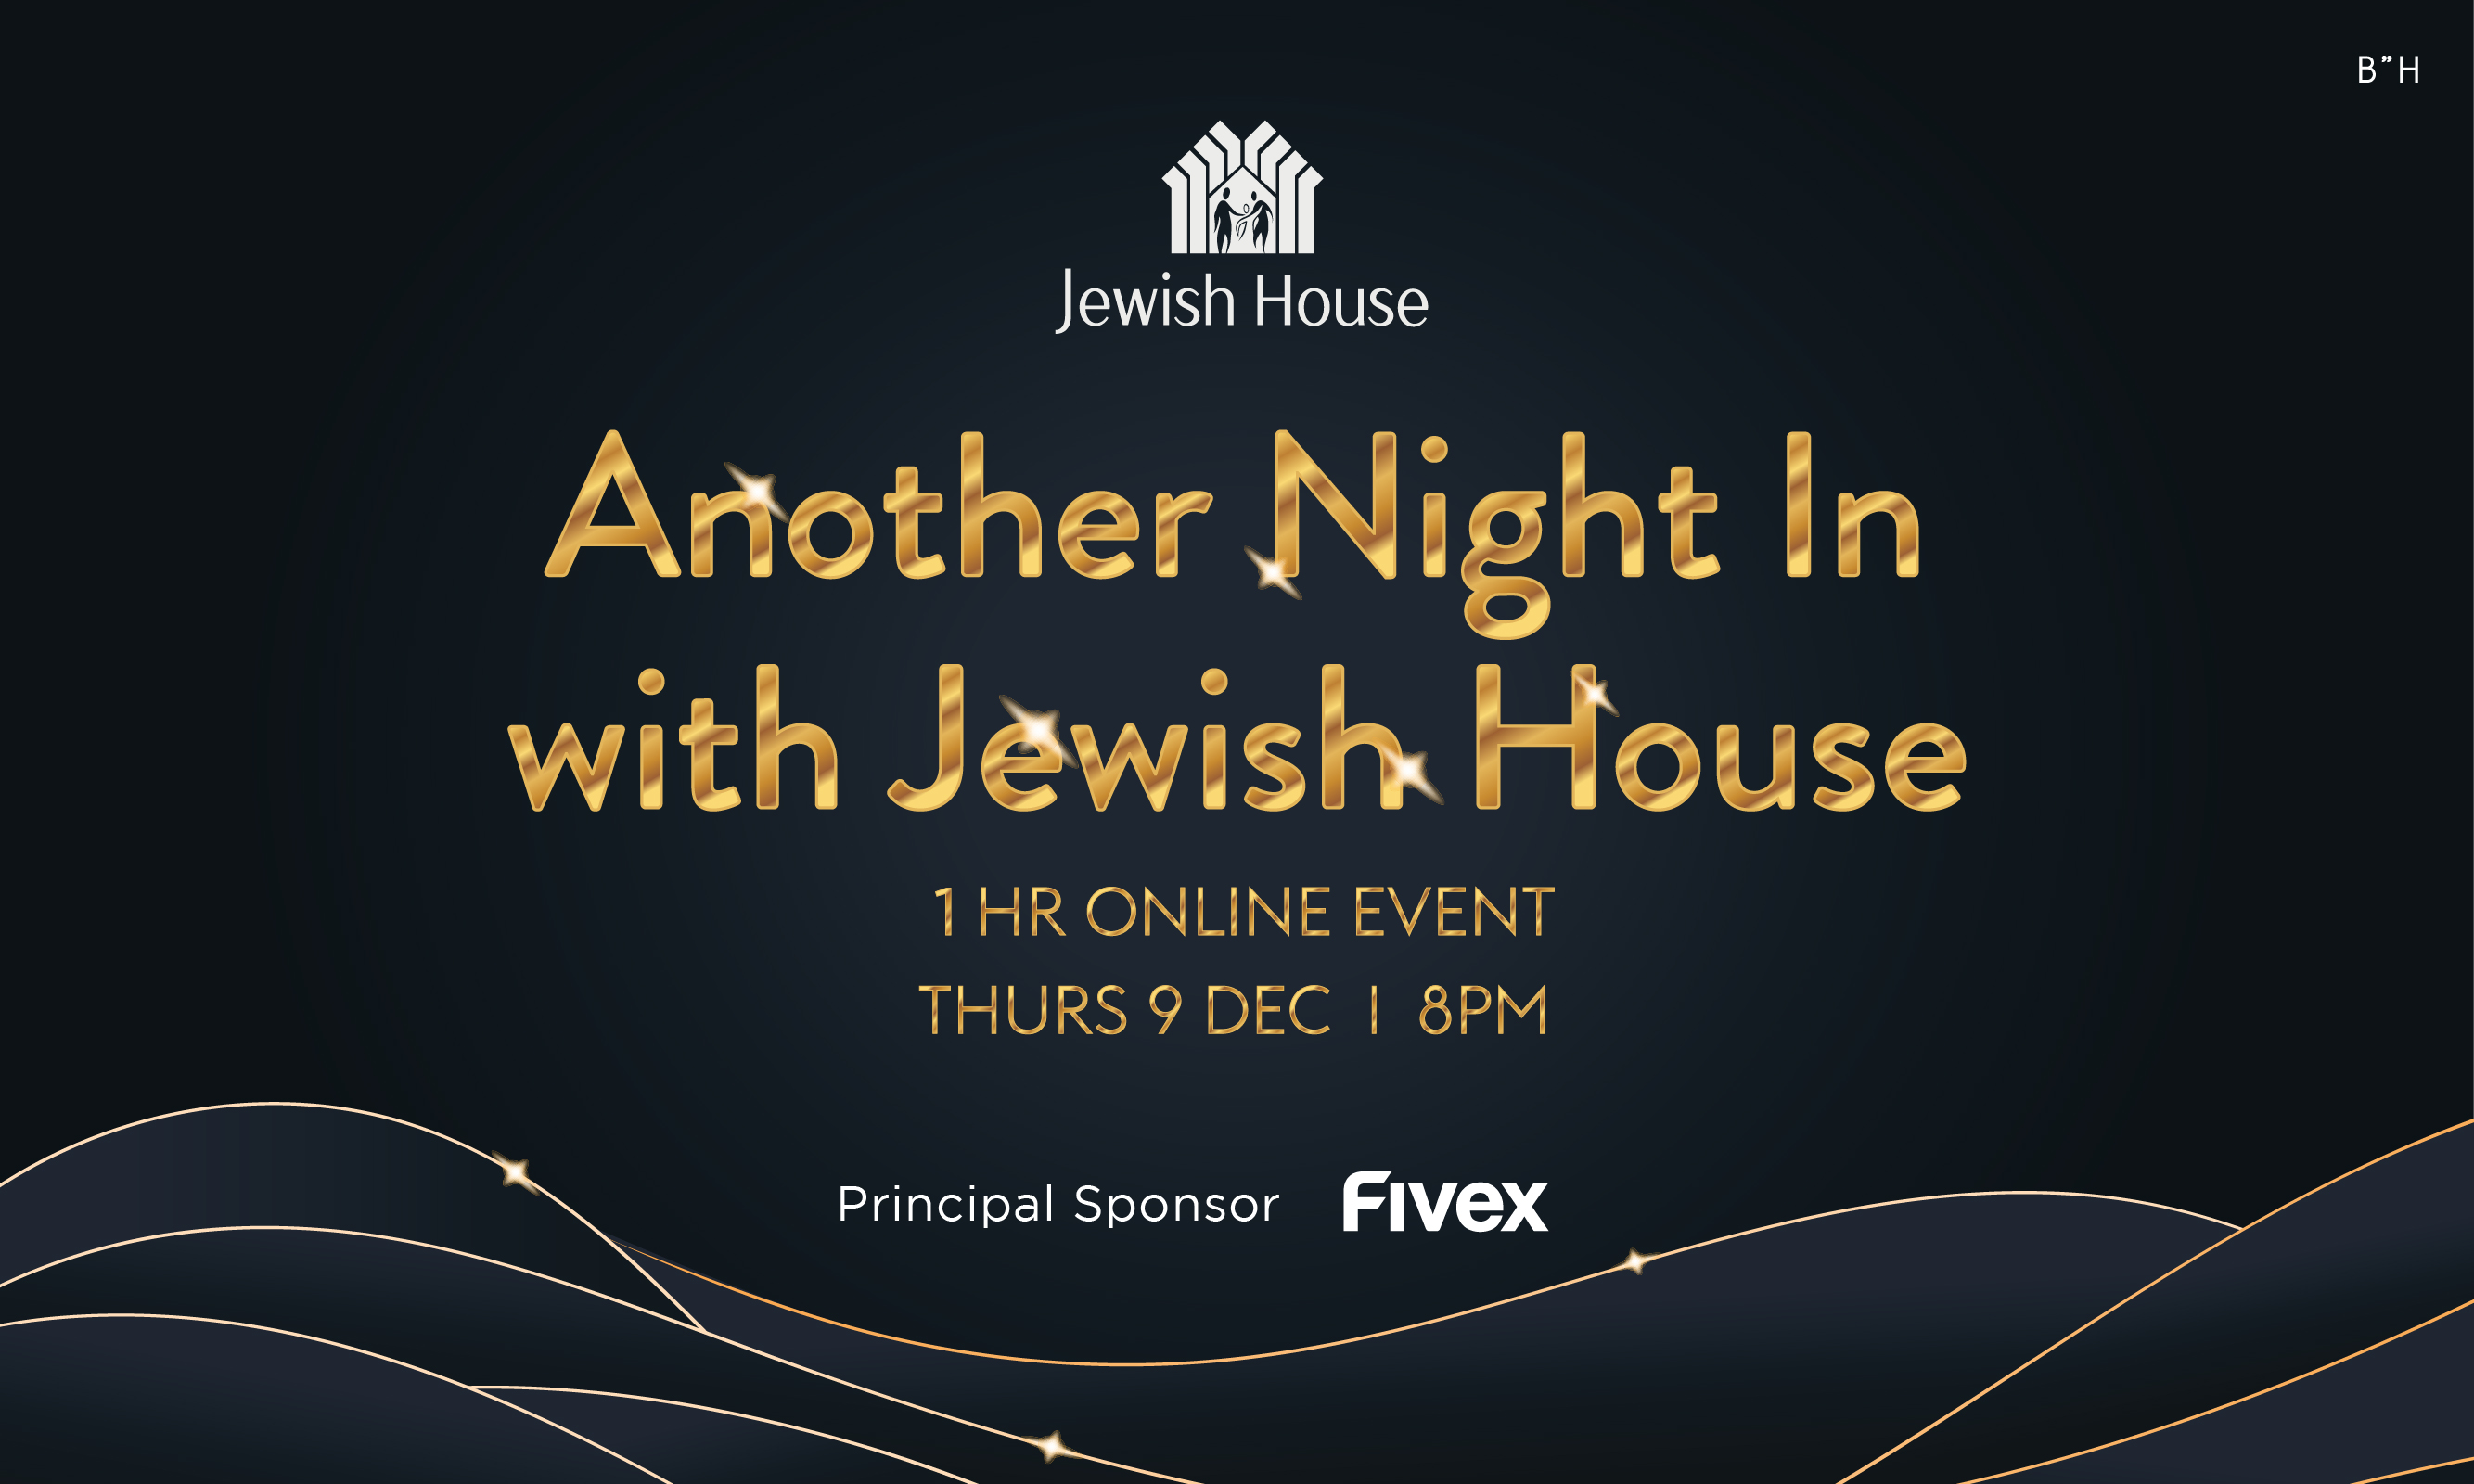 Another Night in with Jewish House